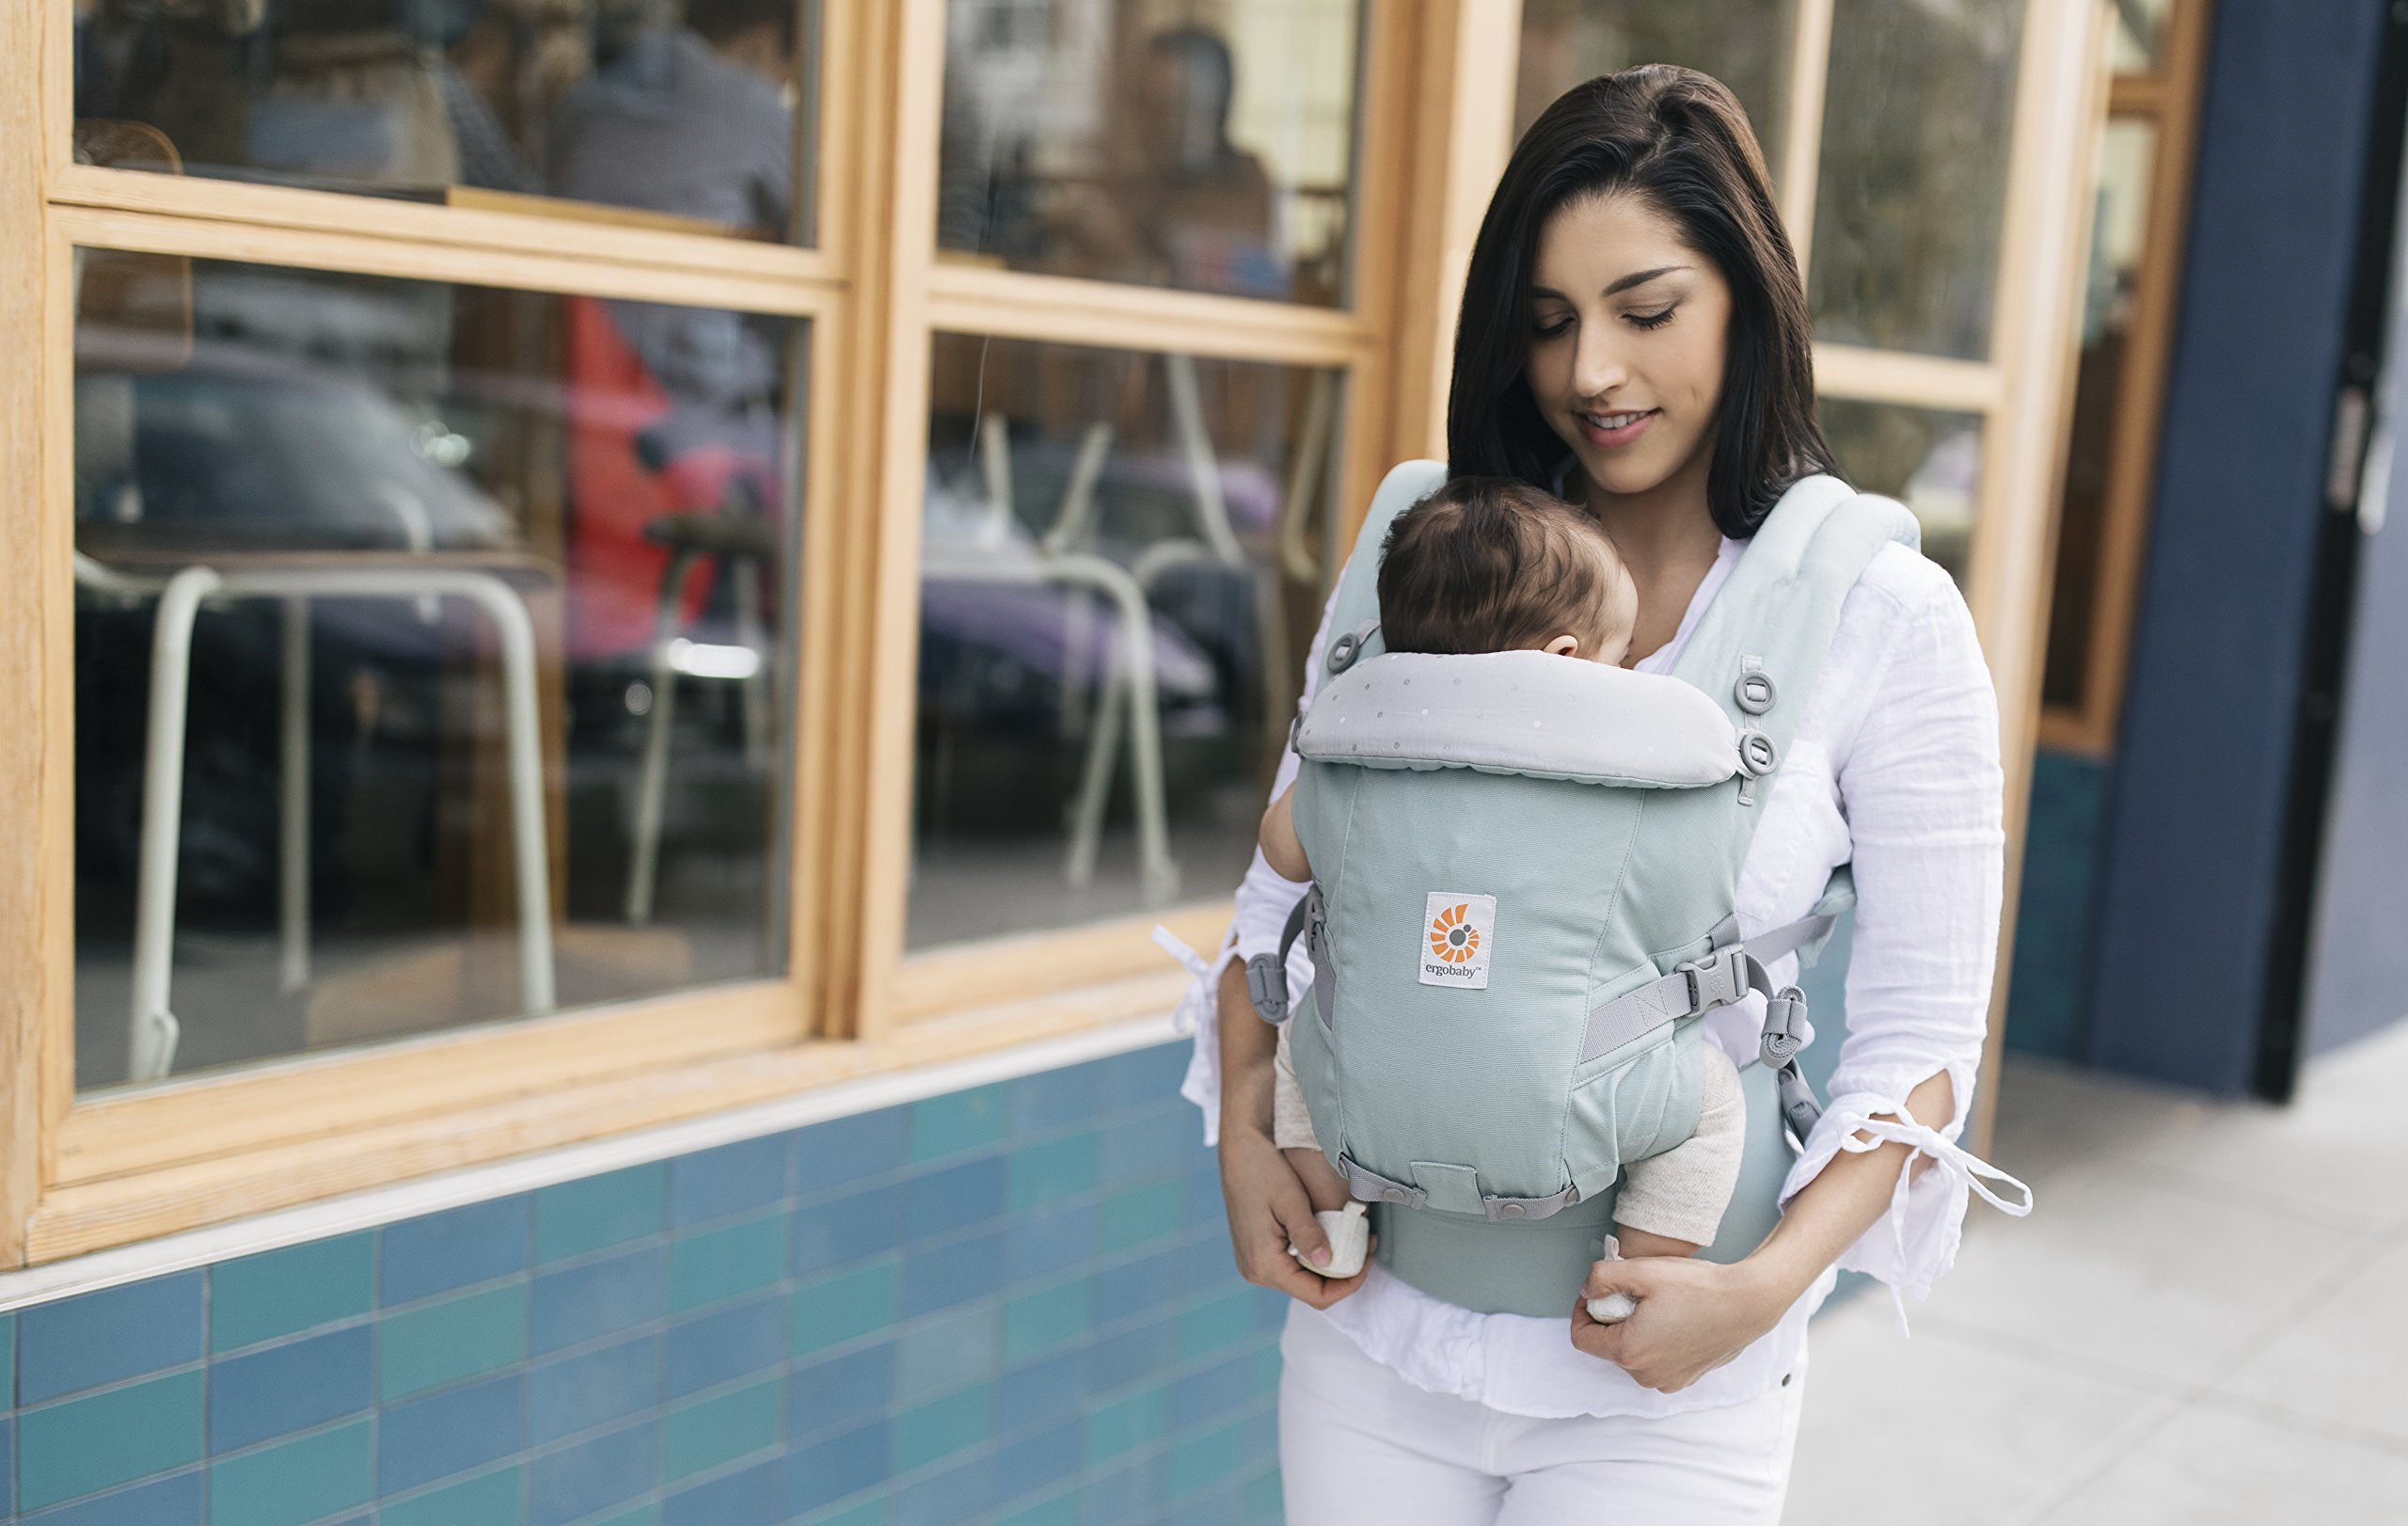 Ergobaby Baby Carrier for Newborn to Toddler up to 20kg, Adapt Frosted Mint 3-Position Ergonomic Child Carriers Front Backpack Ergobaby  4